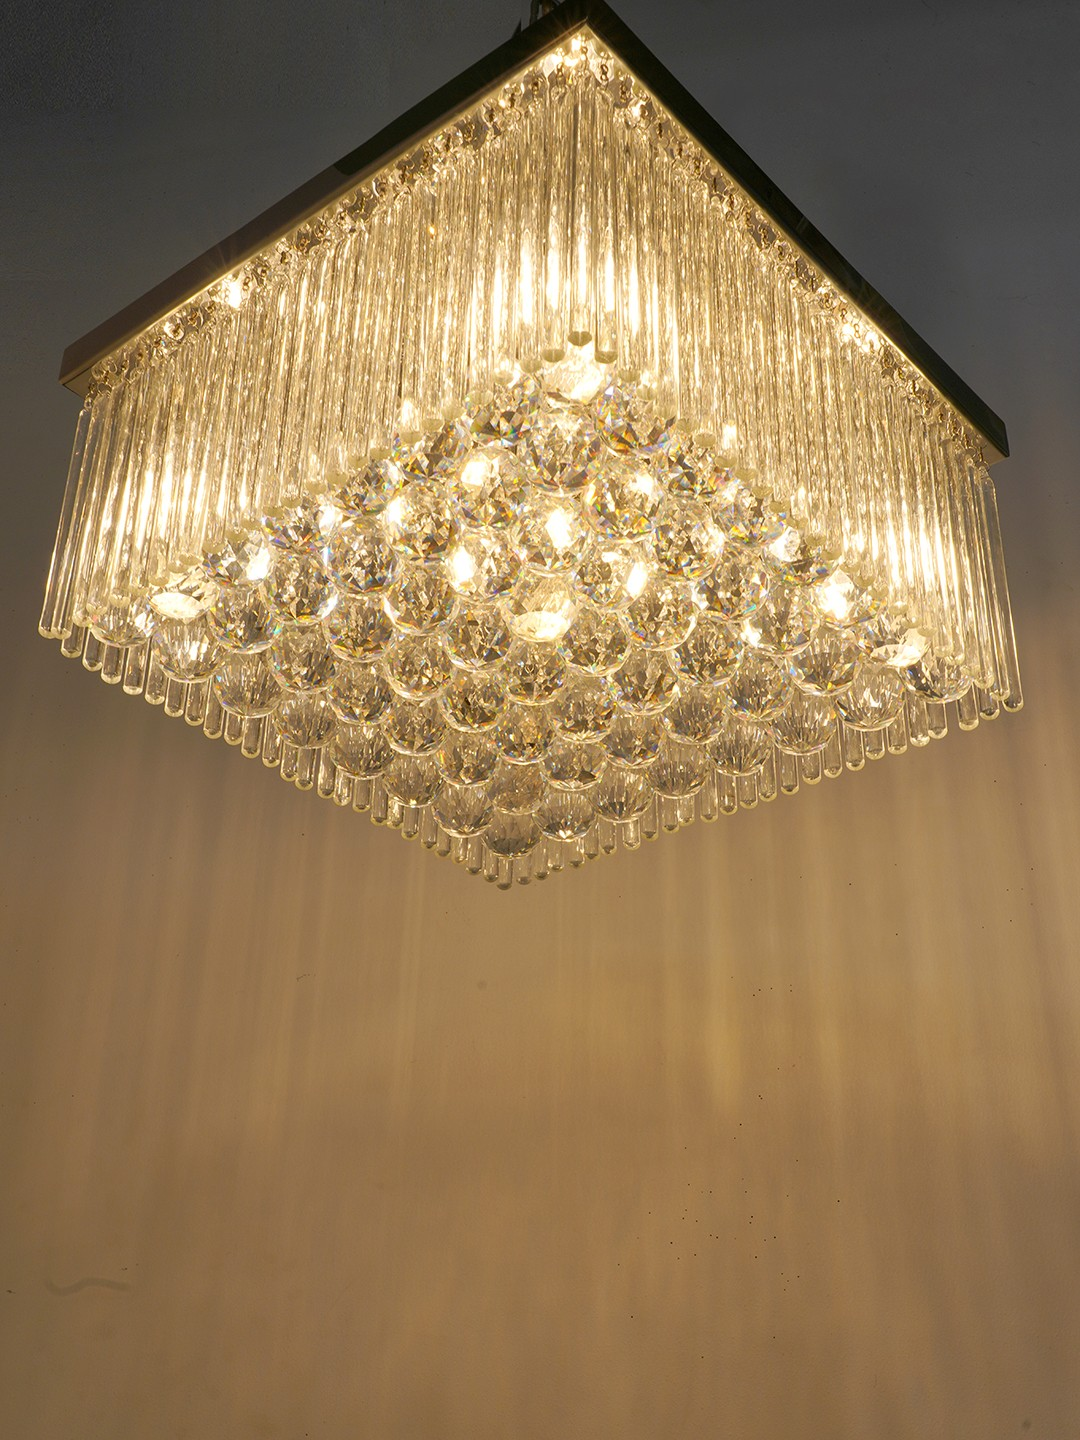 Transitional Silver Rodball cystal chandelier with chrome finish